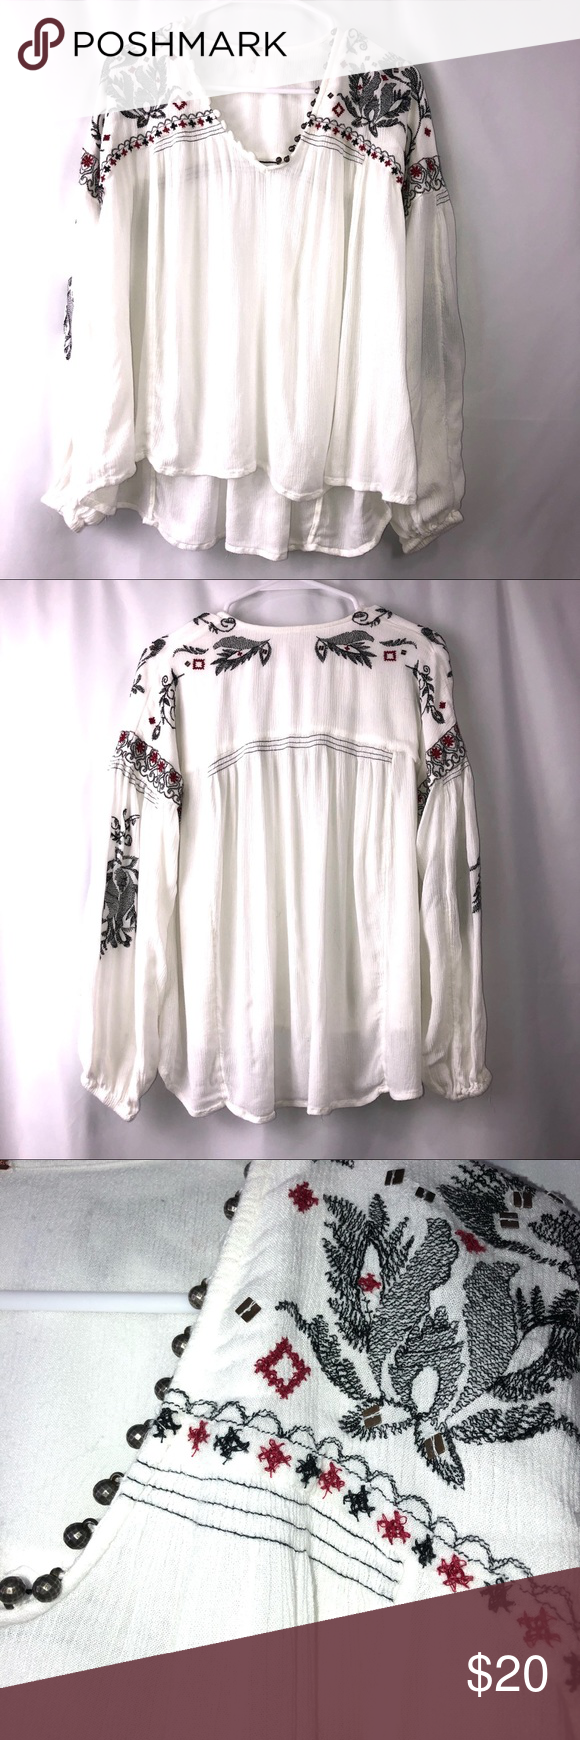 """FREE PEOPLE WHITE BOHO PEASANT TOP EMBROIDERY SZ S Black and red embroidery looks so pretty on this boho peasant top. A few spangles are sprinkled on shoulders and adorable tiny metal balls act as """"buttons"""" on the v-neck. One metal ball is missing. Button loops on other side. Puffy peasant sleeves are also embroidered. VGUC due to missing button. Music festival ready. Armpit to armpit: 22"""" Hips: 24"""" Shoulder to hem: 22"""" Measurements are approximate 0137 Free People Tops Blouses"""